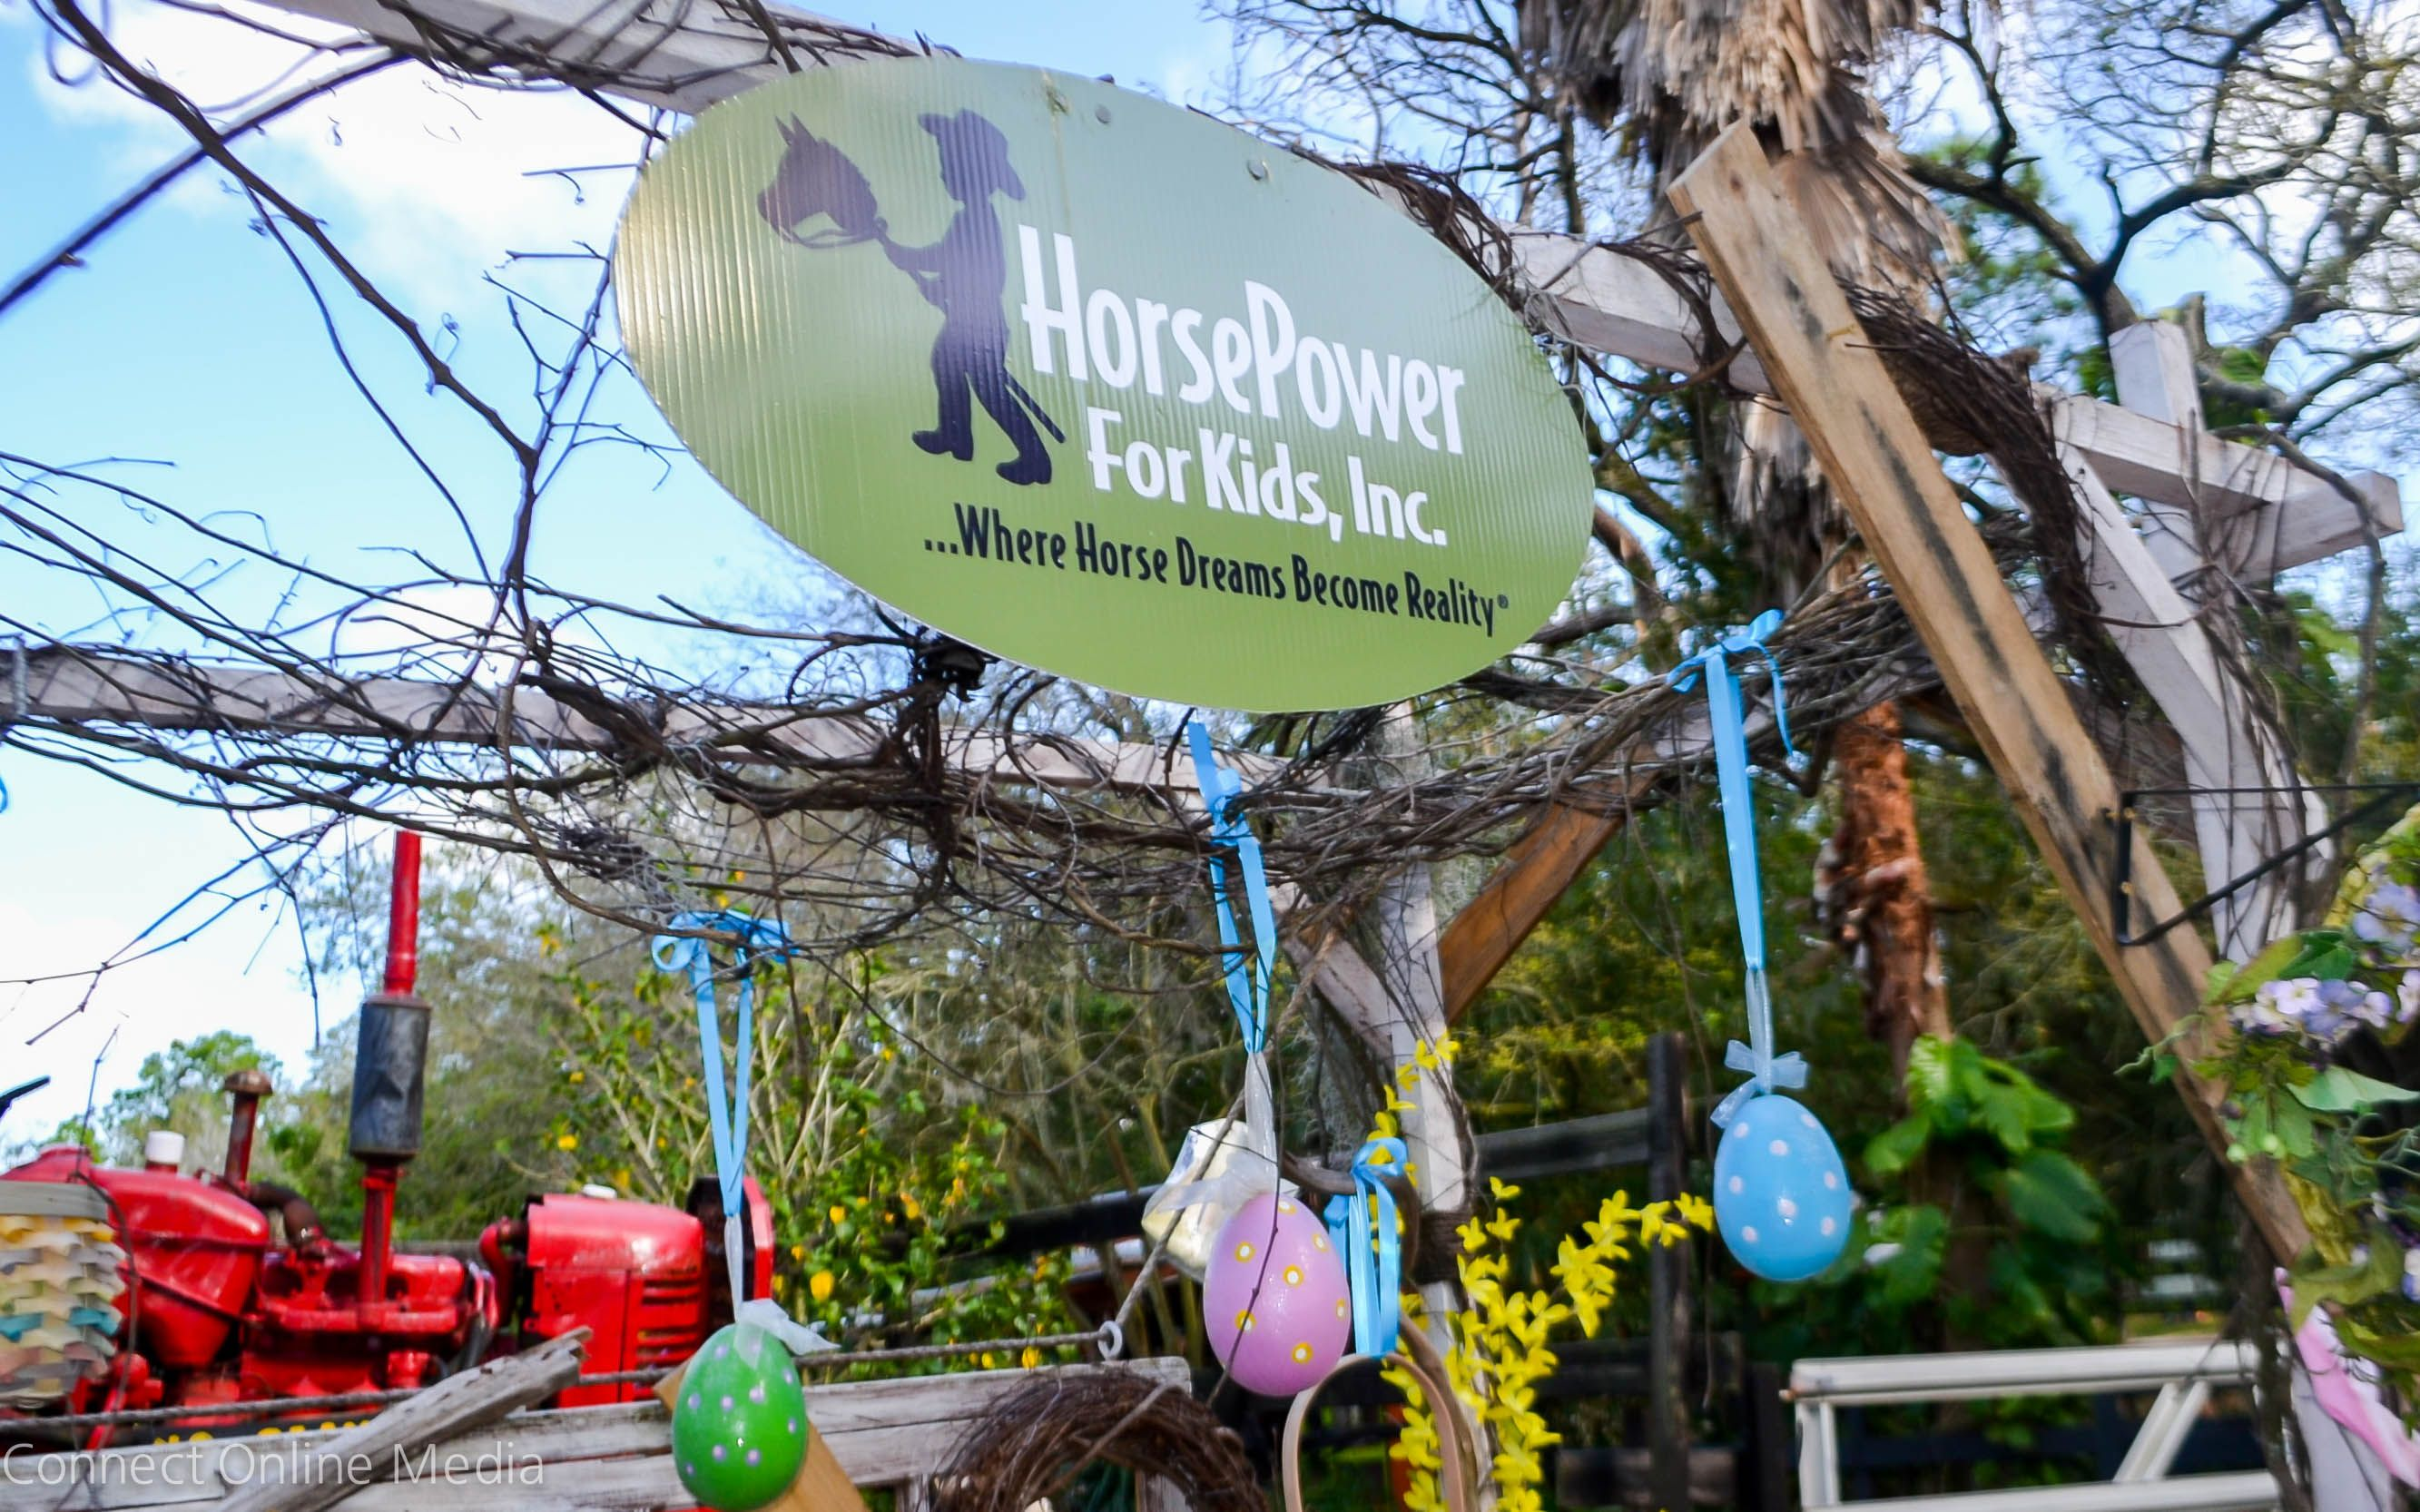 Horsepower-For-Kids.jpg